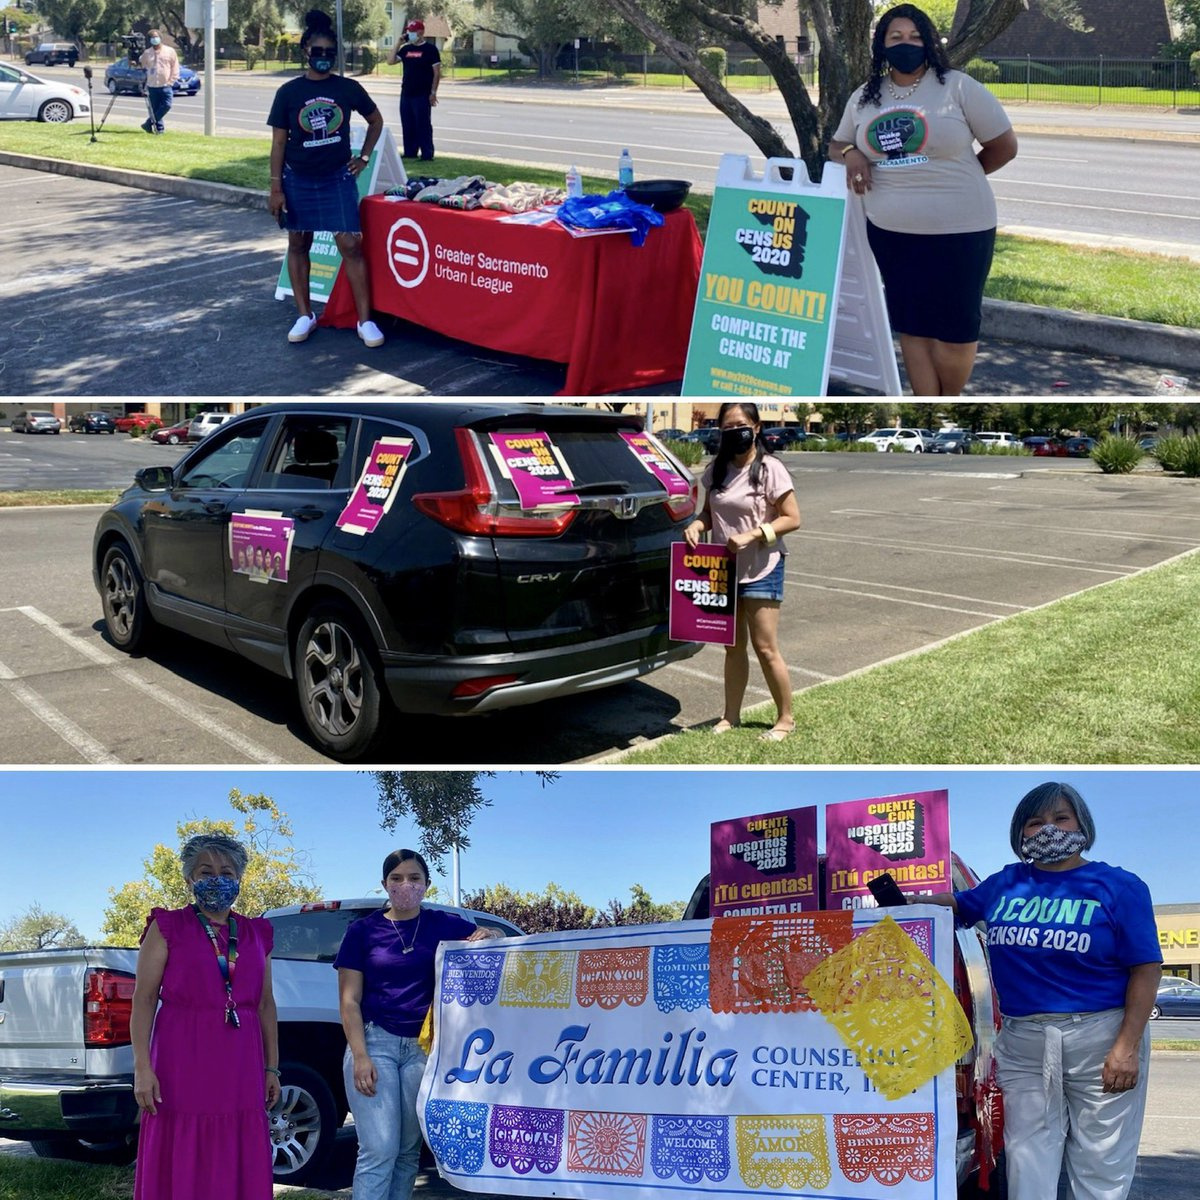 We participated in the Greater Sacramento Urban League Census Caravan yesterday. Here are some pictures to enjoy🙌🏾 https://t.co/byrI3fol5m